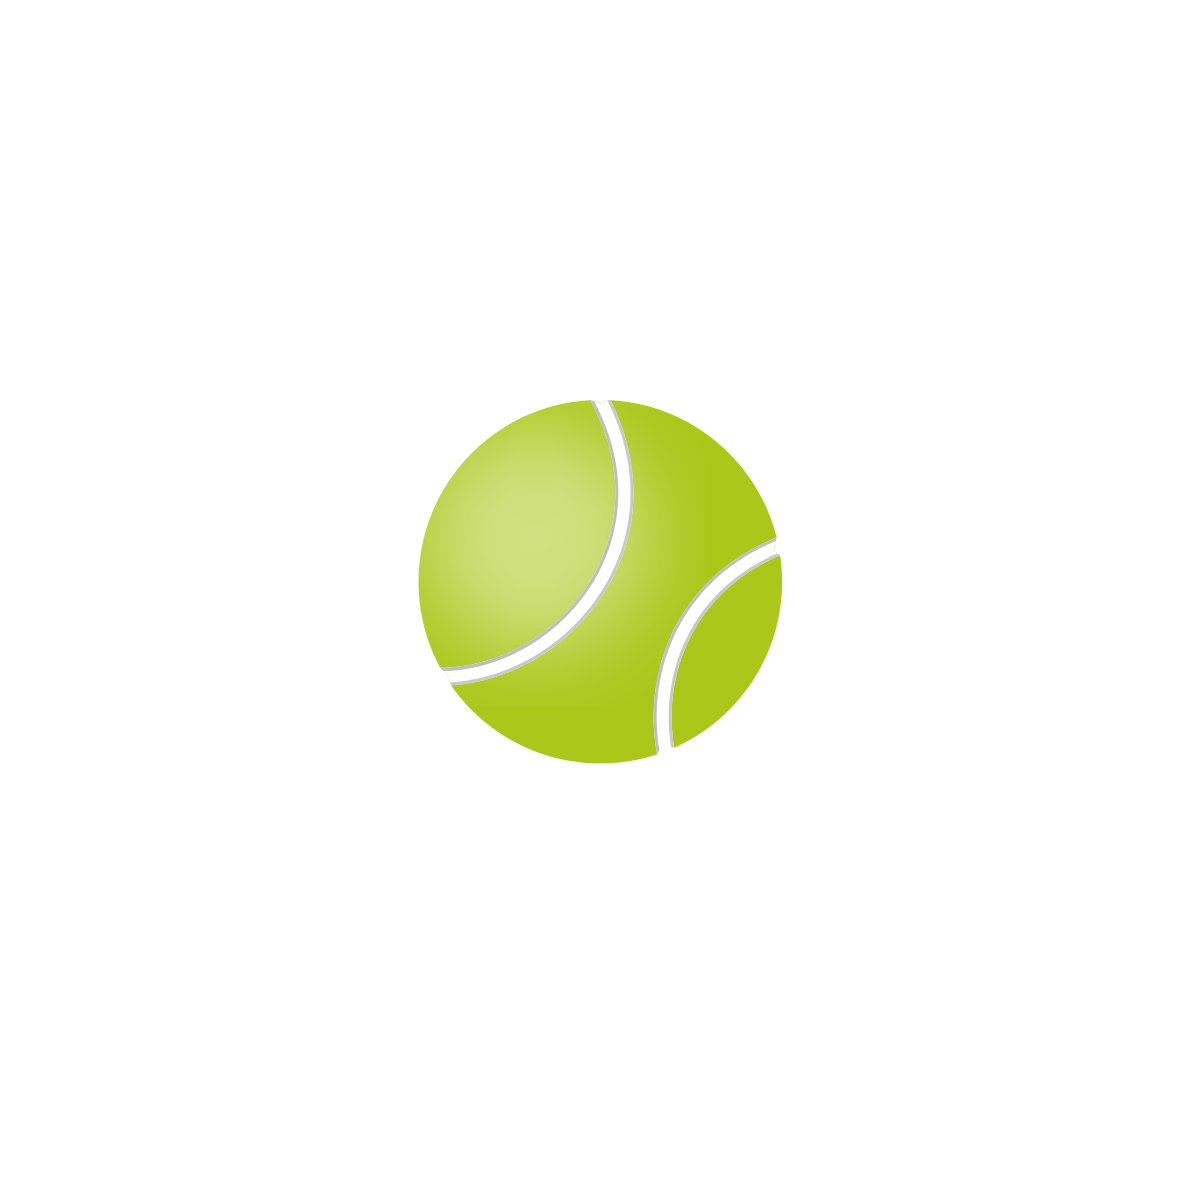 Free Tennis Ball Picture, Download Free Clip Art, Free Clip.